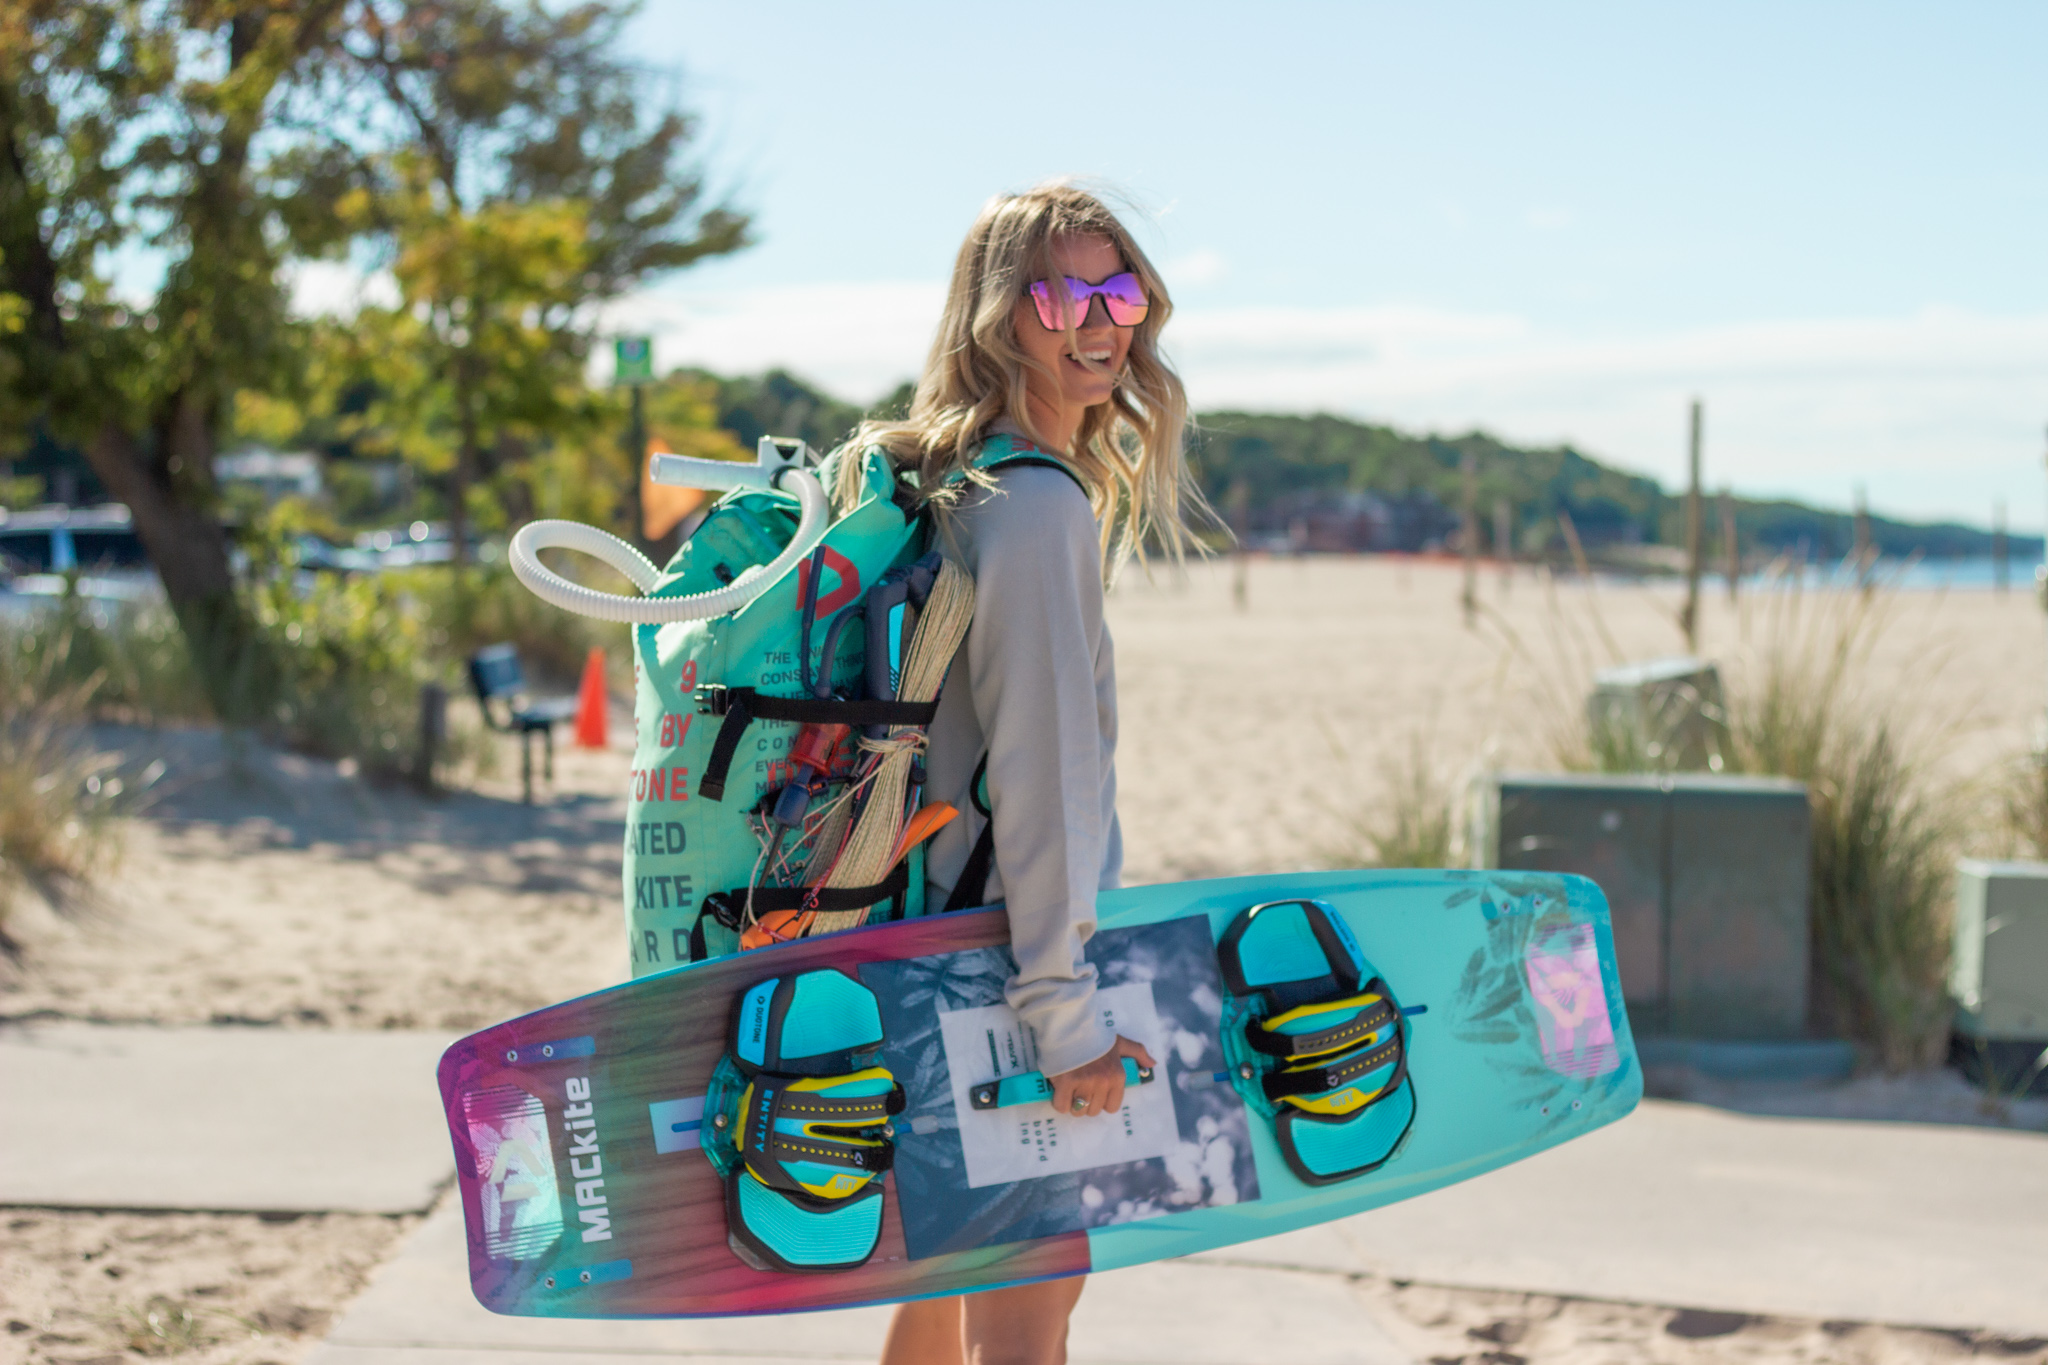 Shelby Sharlow - Local Lake MichiganKite Boarder, Model and Mom